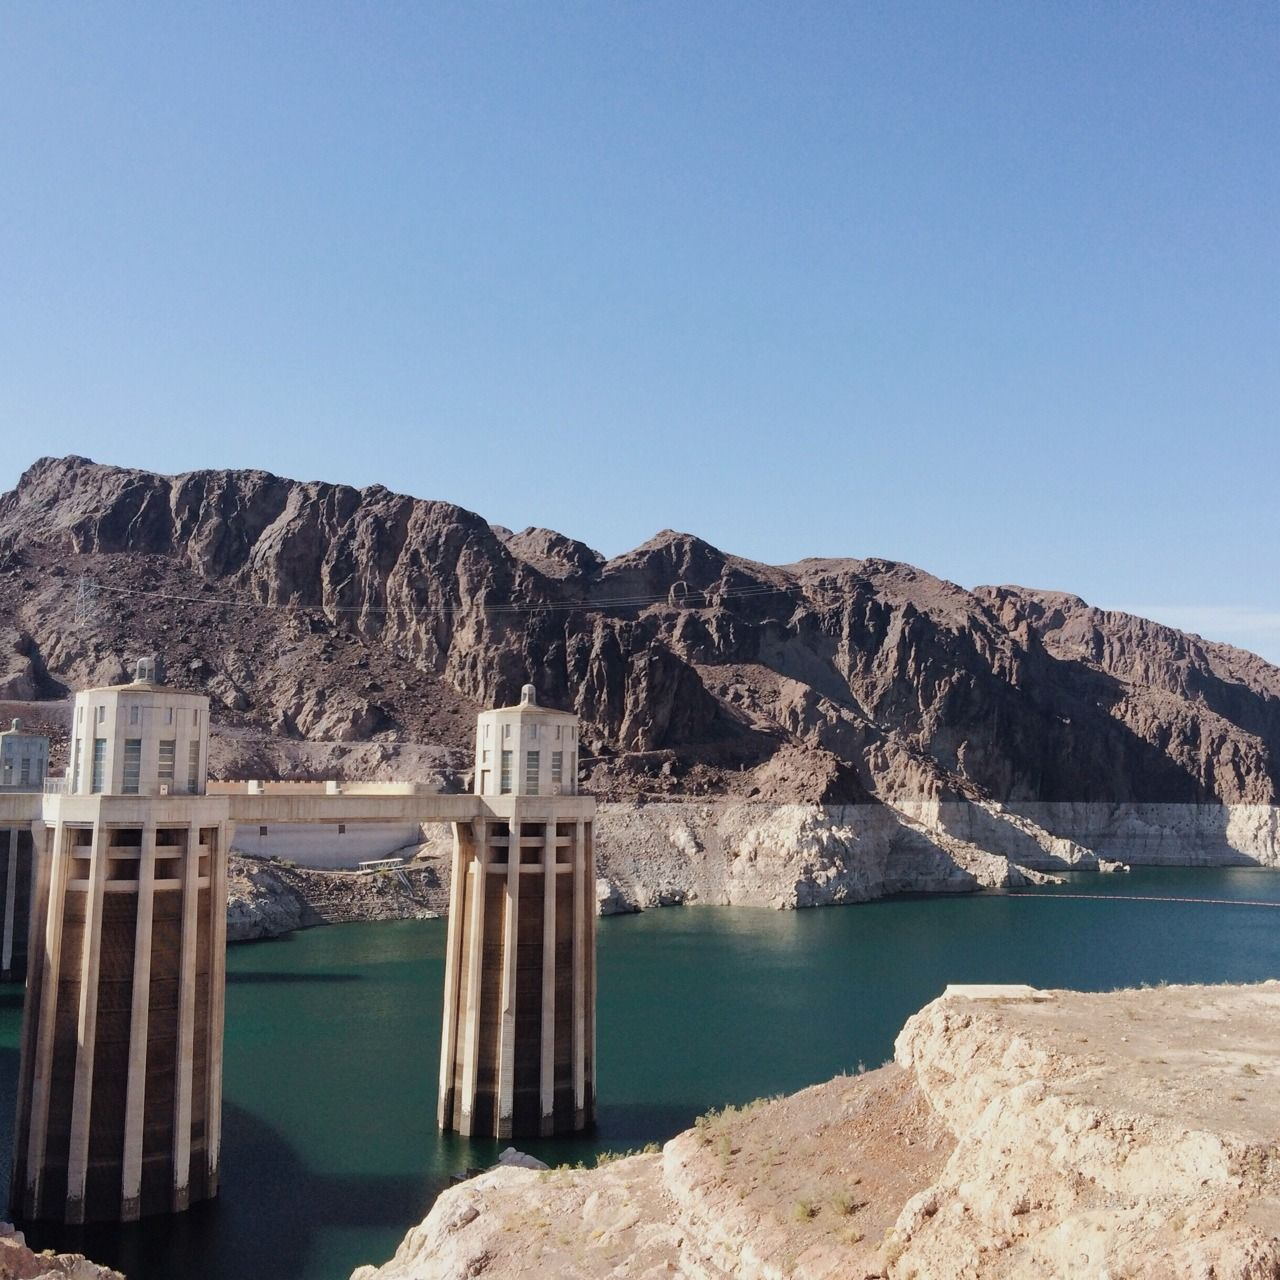 A random decision to drive to Arizona nearly resulted in us never coming home. While the Hoover Dam is amazingly beautiful, it is also amazingly HOT, so plan to go in the morning or evening when it's a bit cooler so you don't end up with nosebleeds or near death experiences.